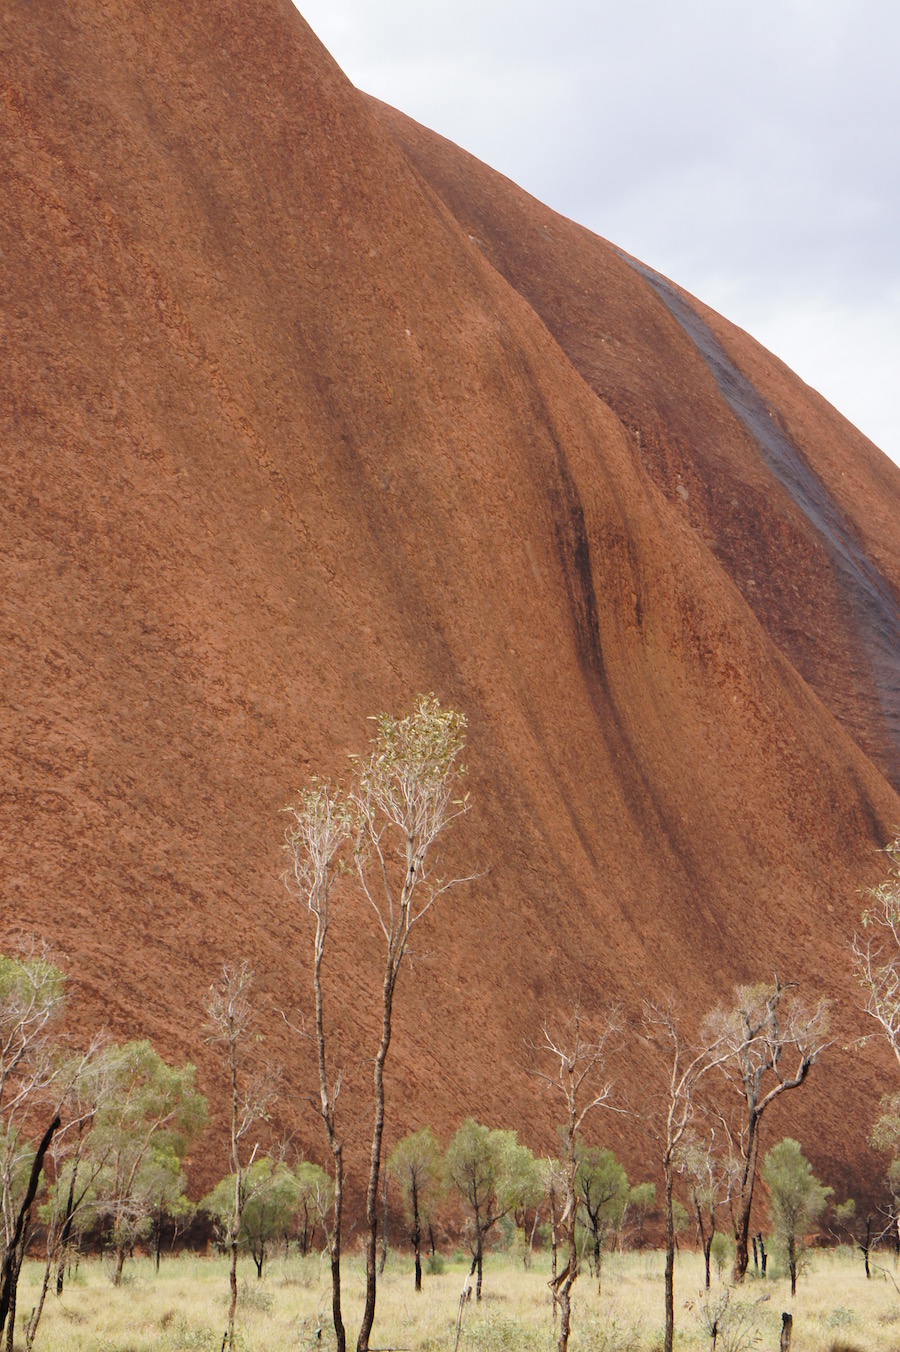 A rock which speaks: Uluru near the Liru (Poisonous snake man) walk. Photo © author 2017.